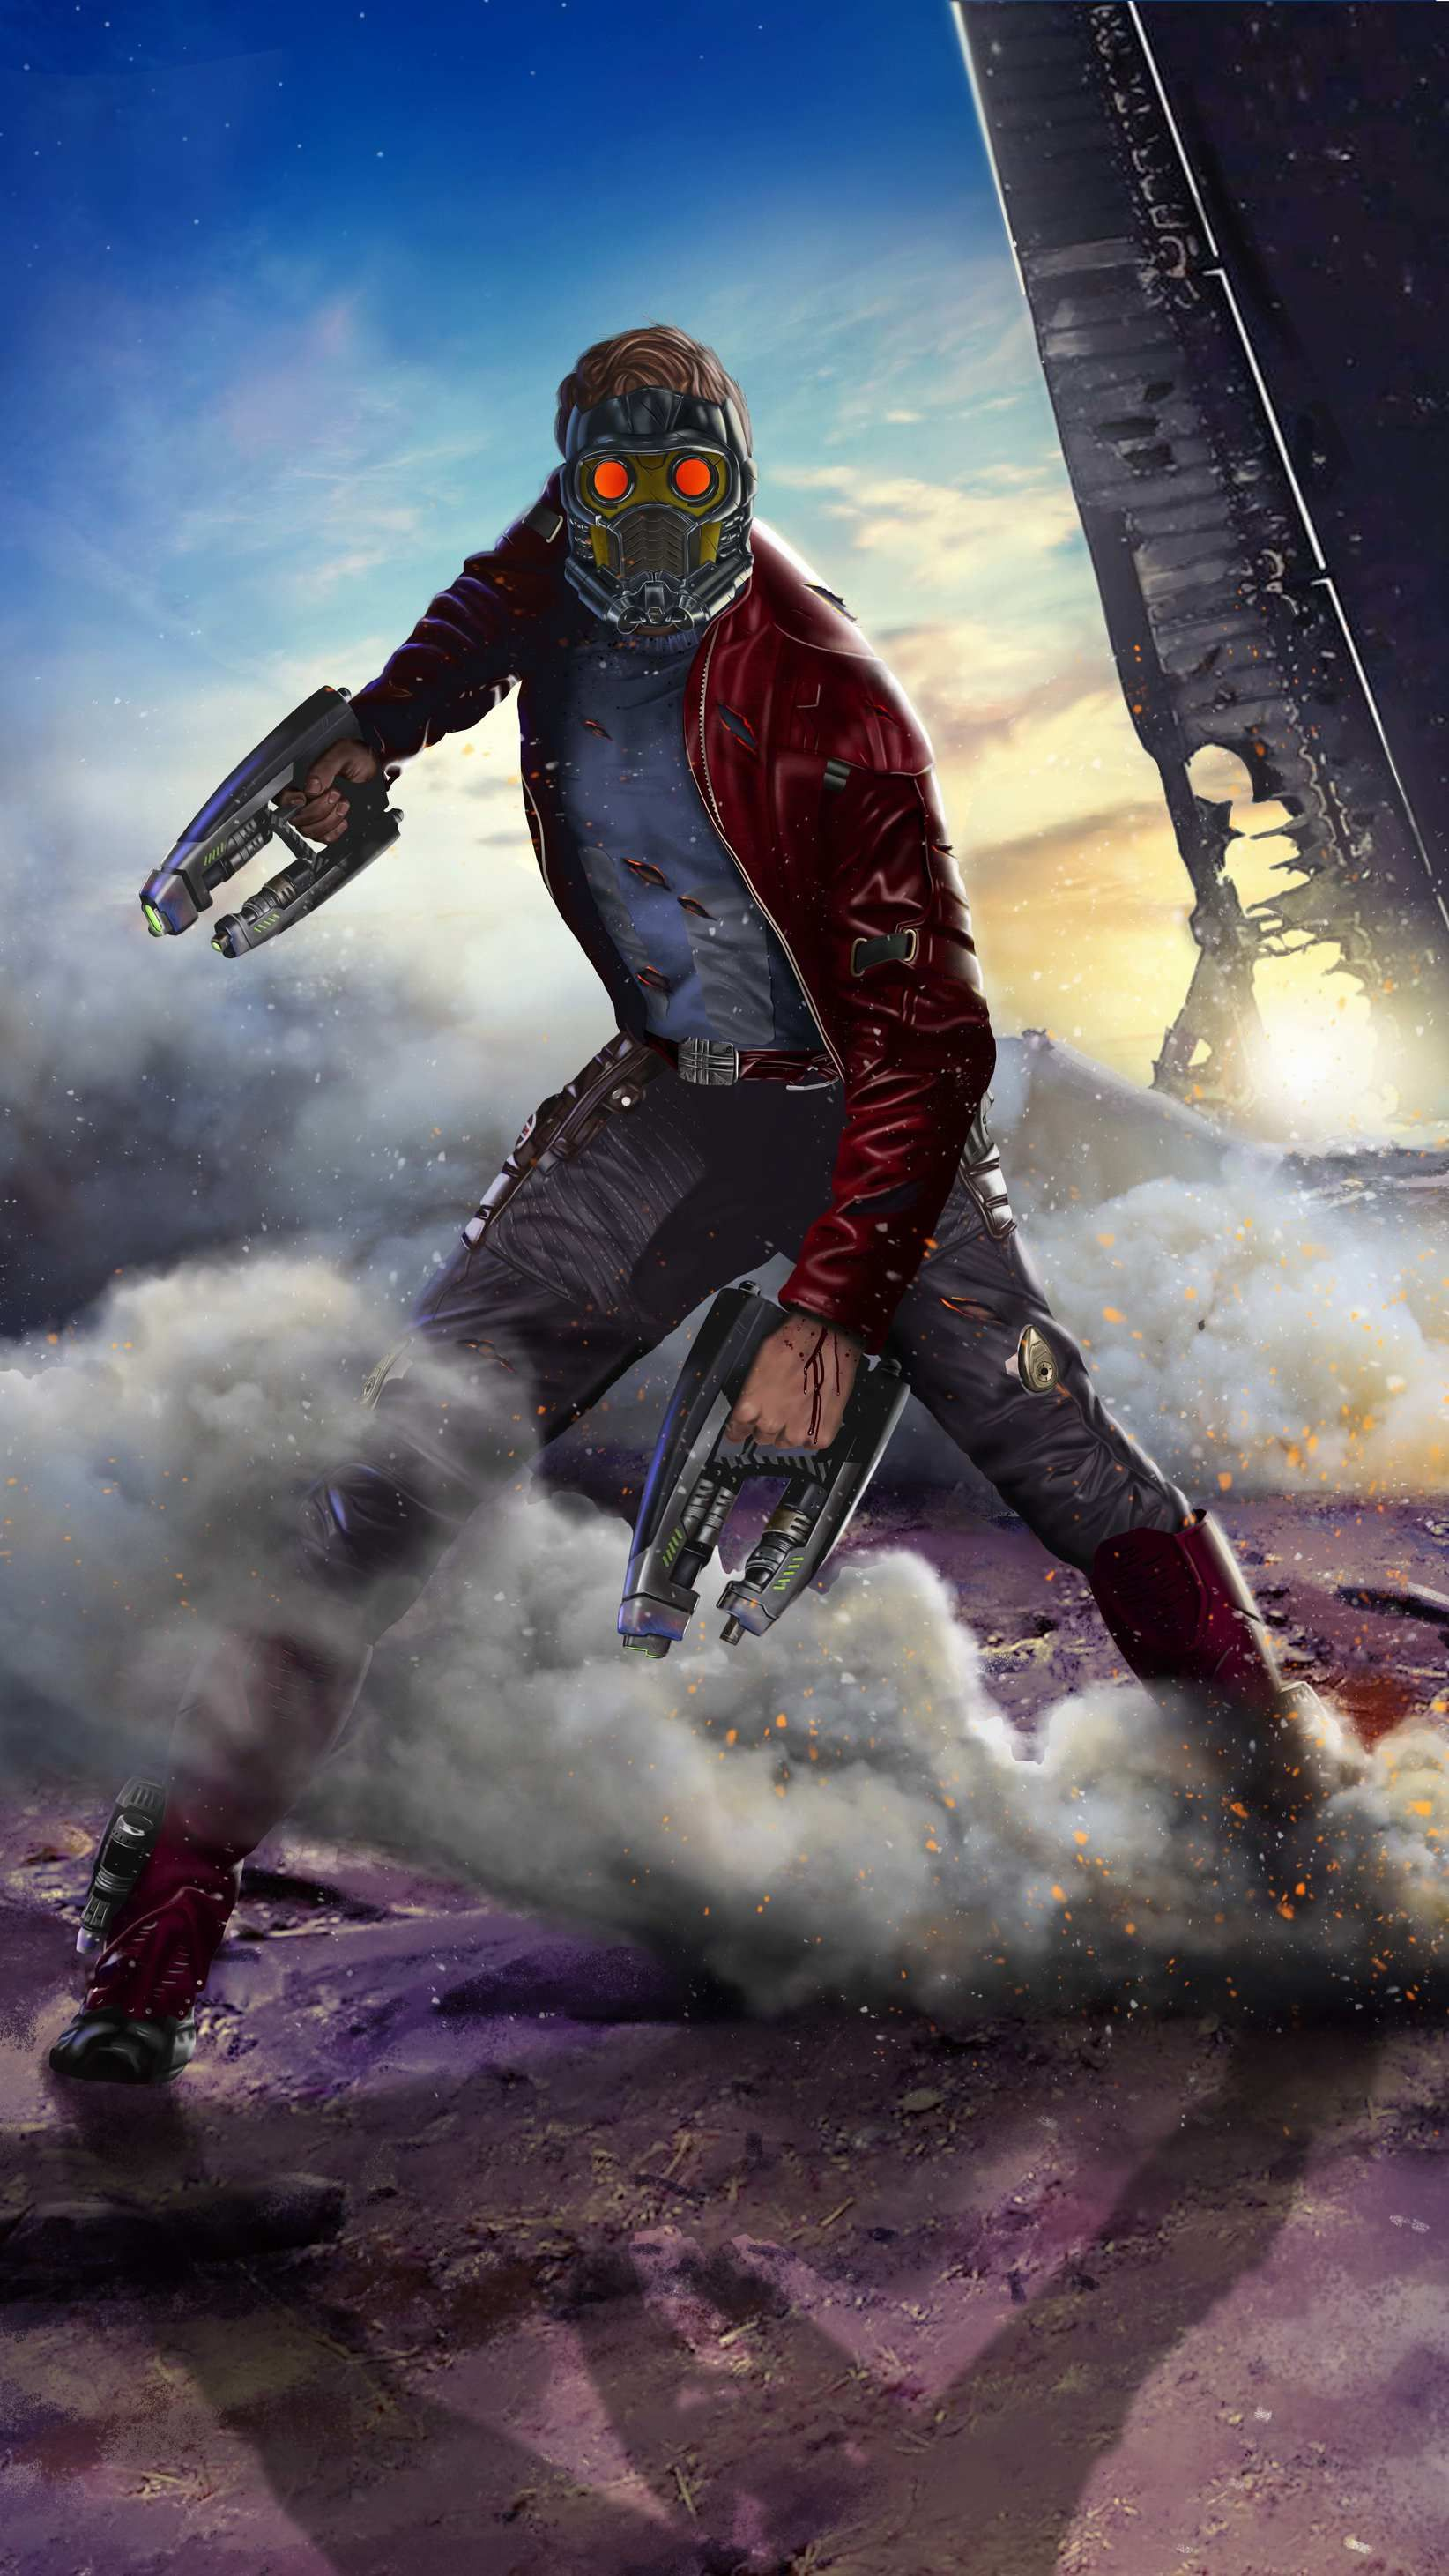 Guardians Of The Galaxy Star Lord Wallpaper Marvel Superheroes Guardians Of The Galaxy Marvel Cinematic